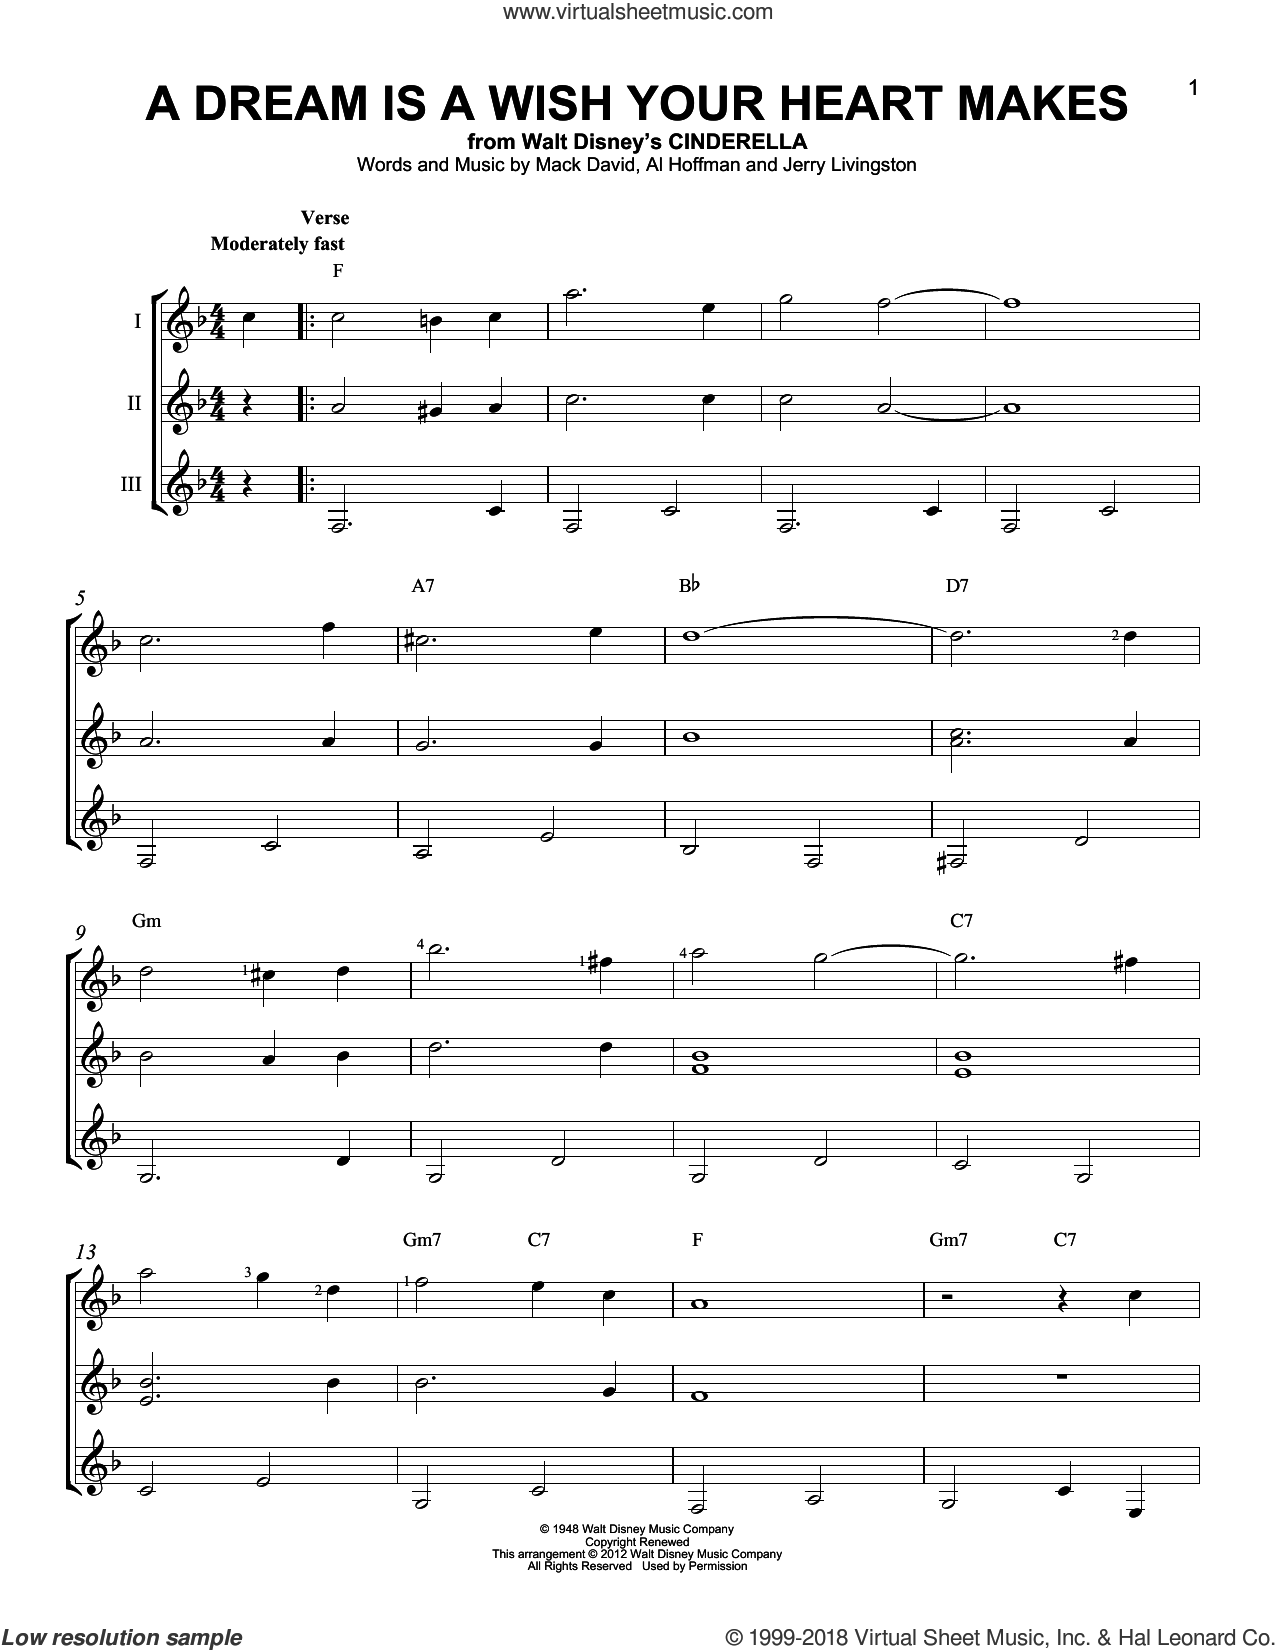 A Dream Is A Wish Your Heart Makes sheet music for guitar ensemble by Al Hoffman, Linda Ronstadt, Miscellaneous, Jerry Livingston and Mack David. Score Image Preview.